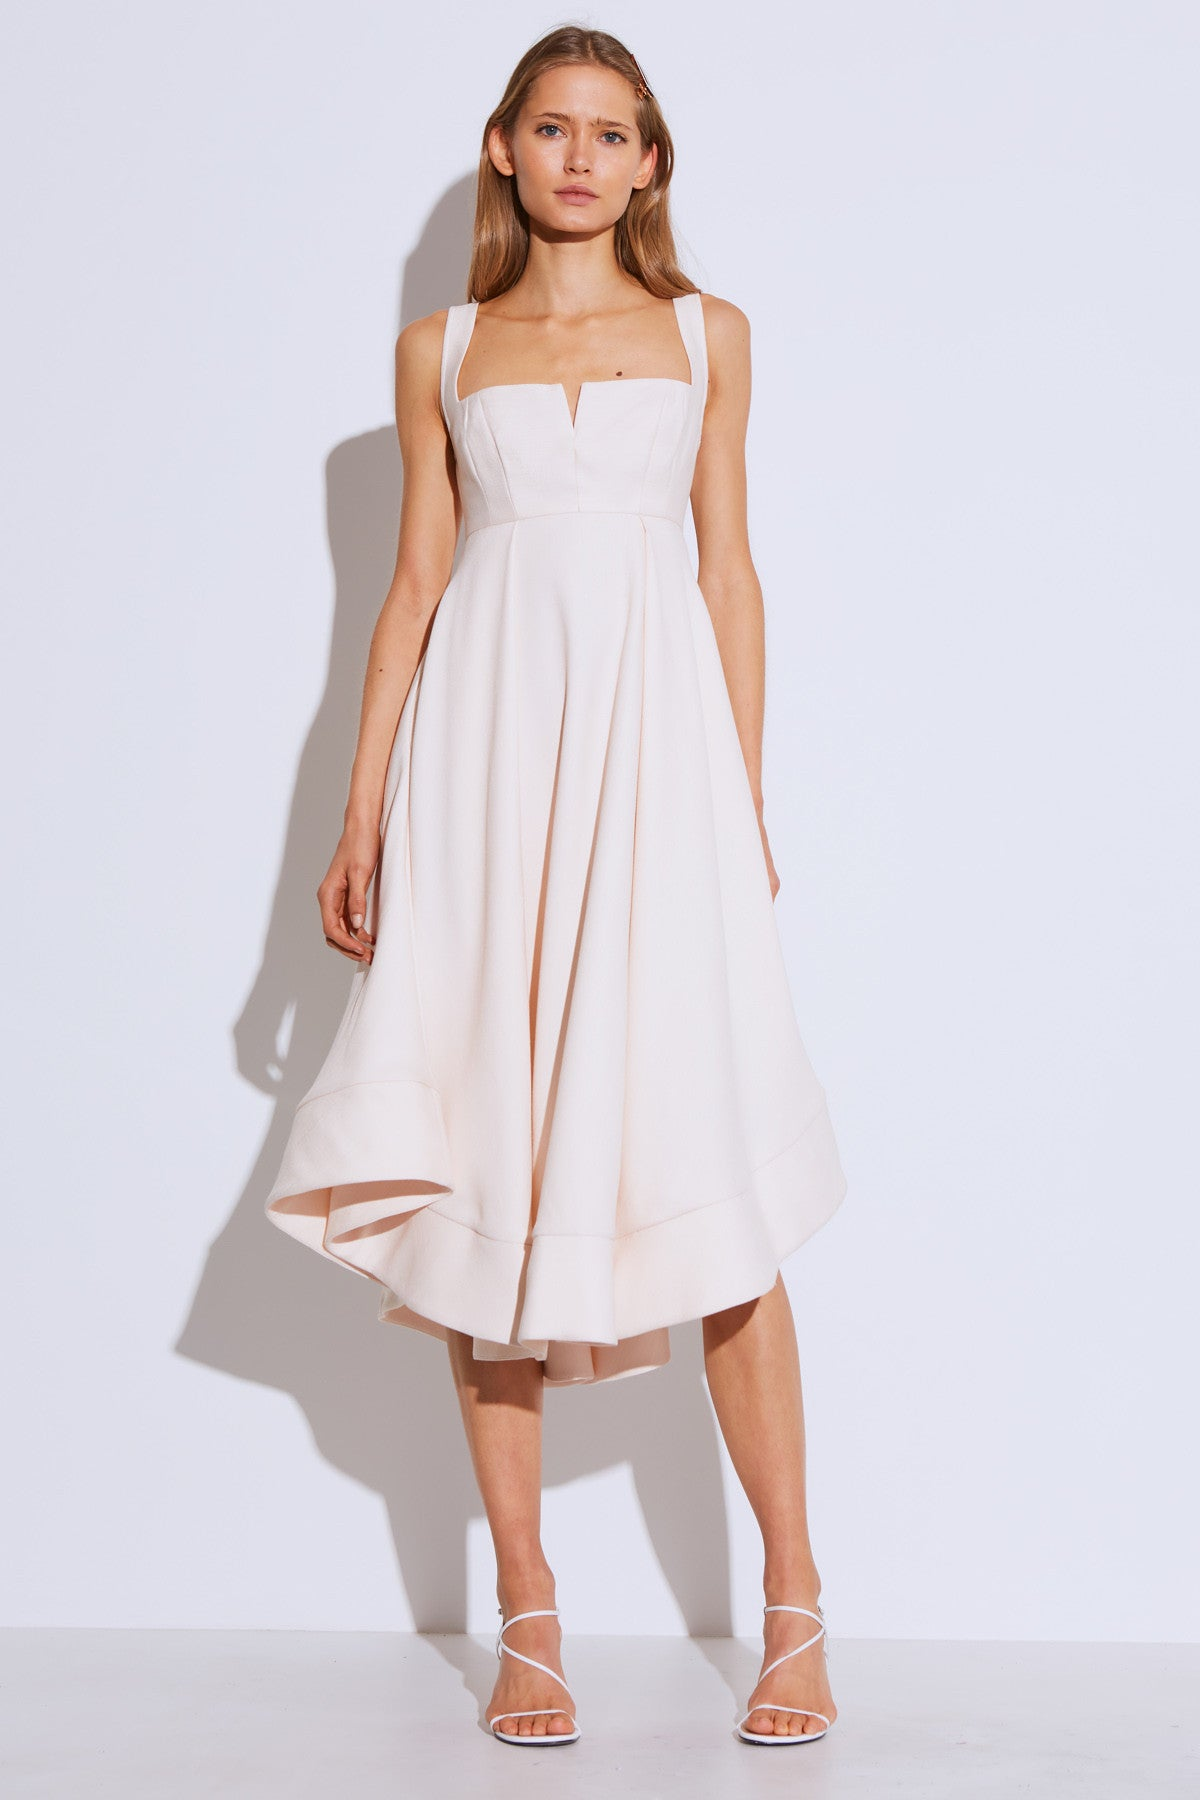 STATEMENT GOWN cream